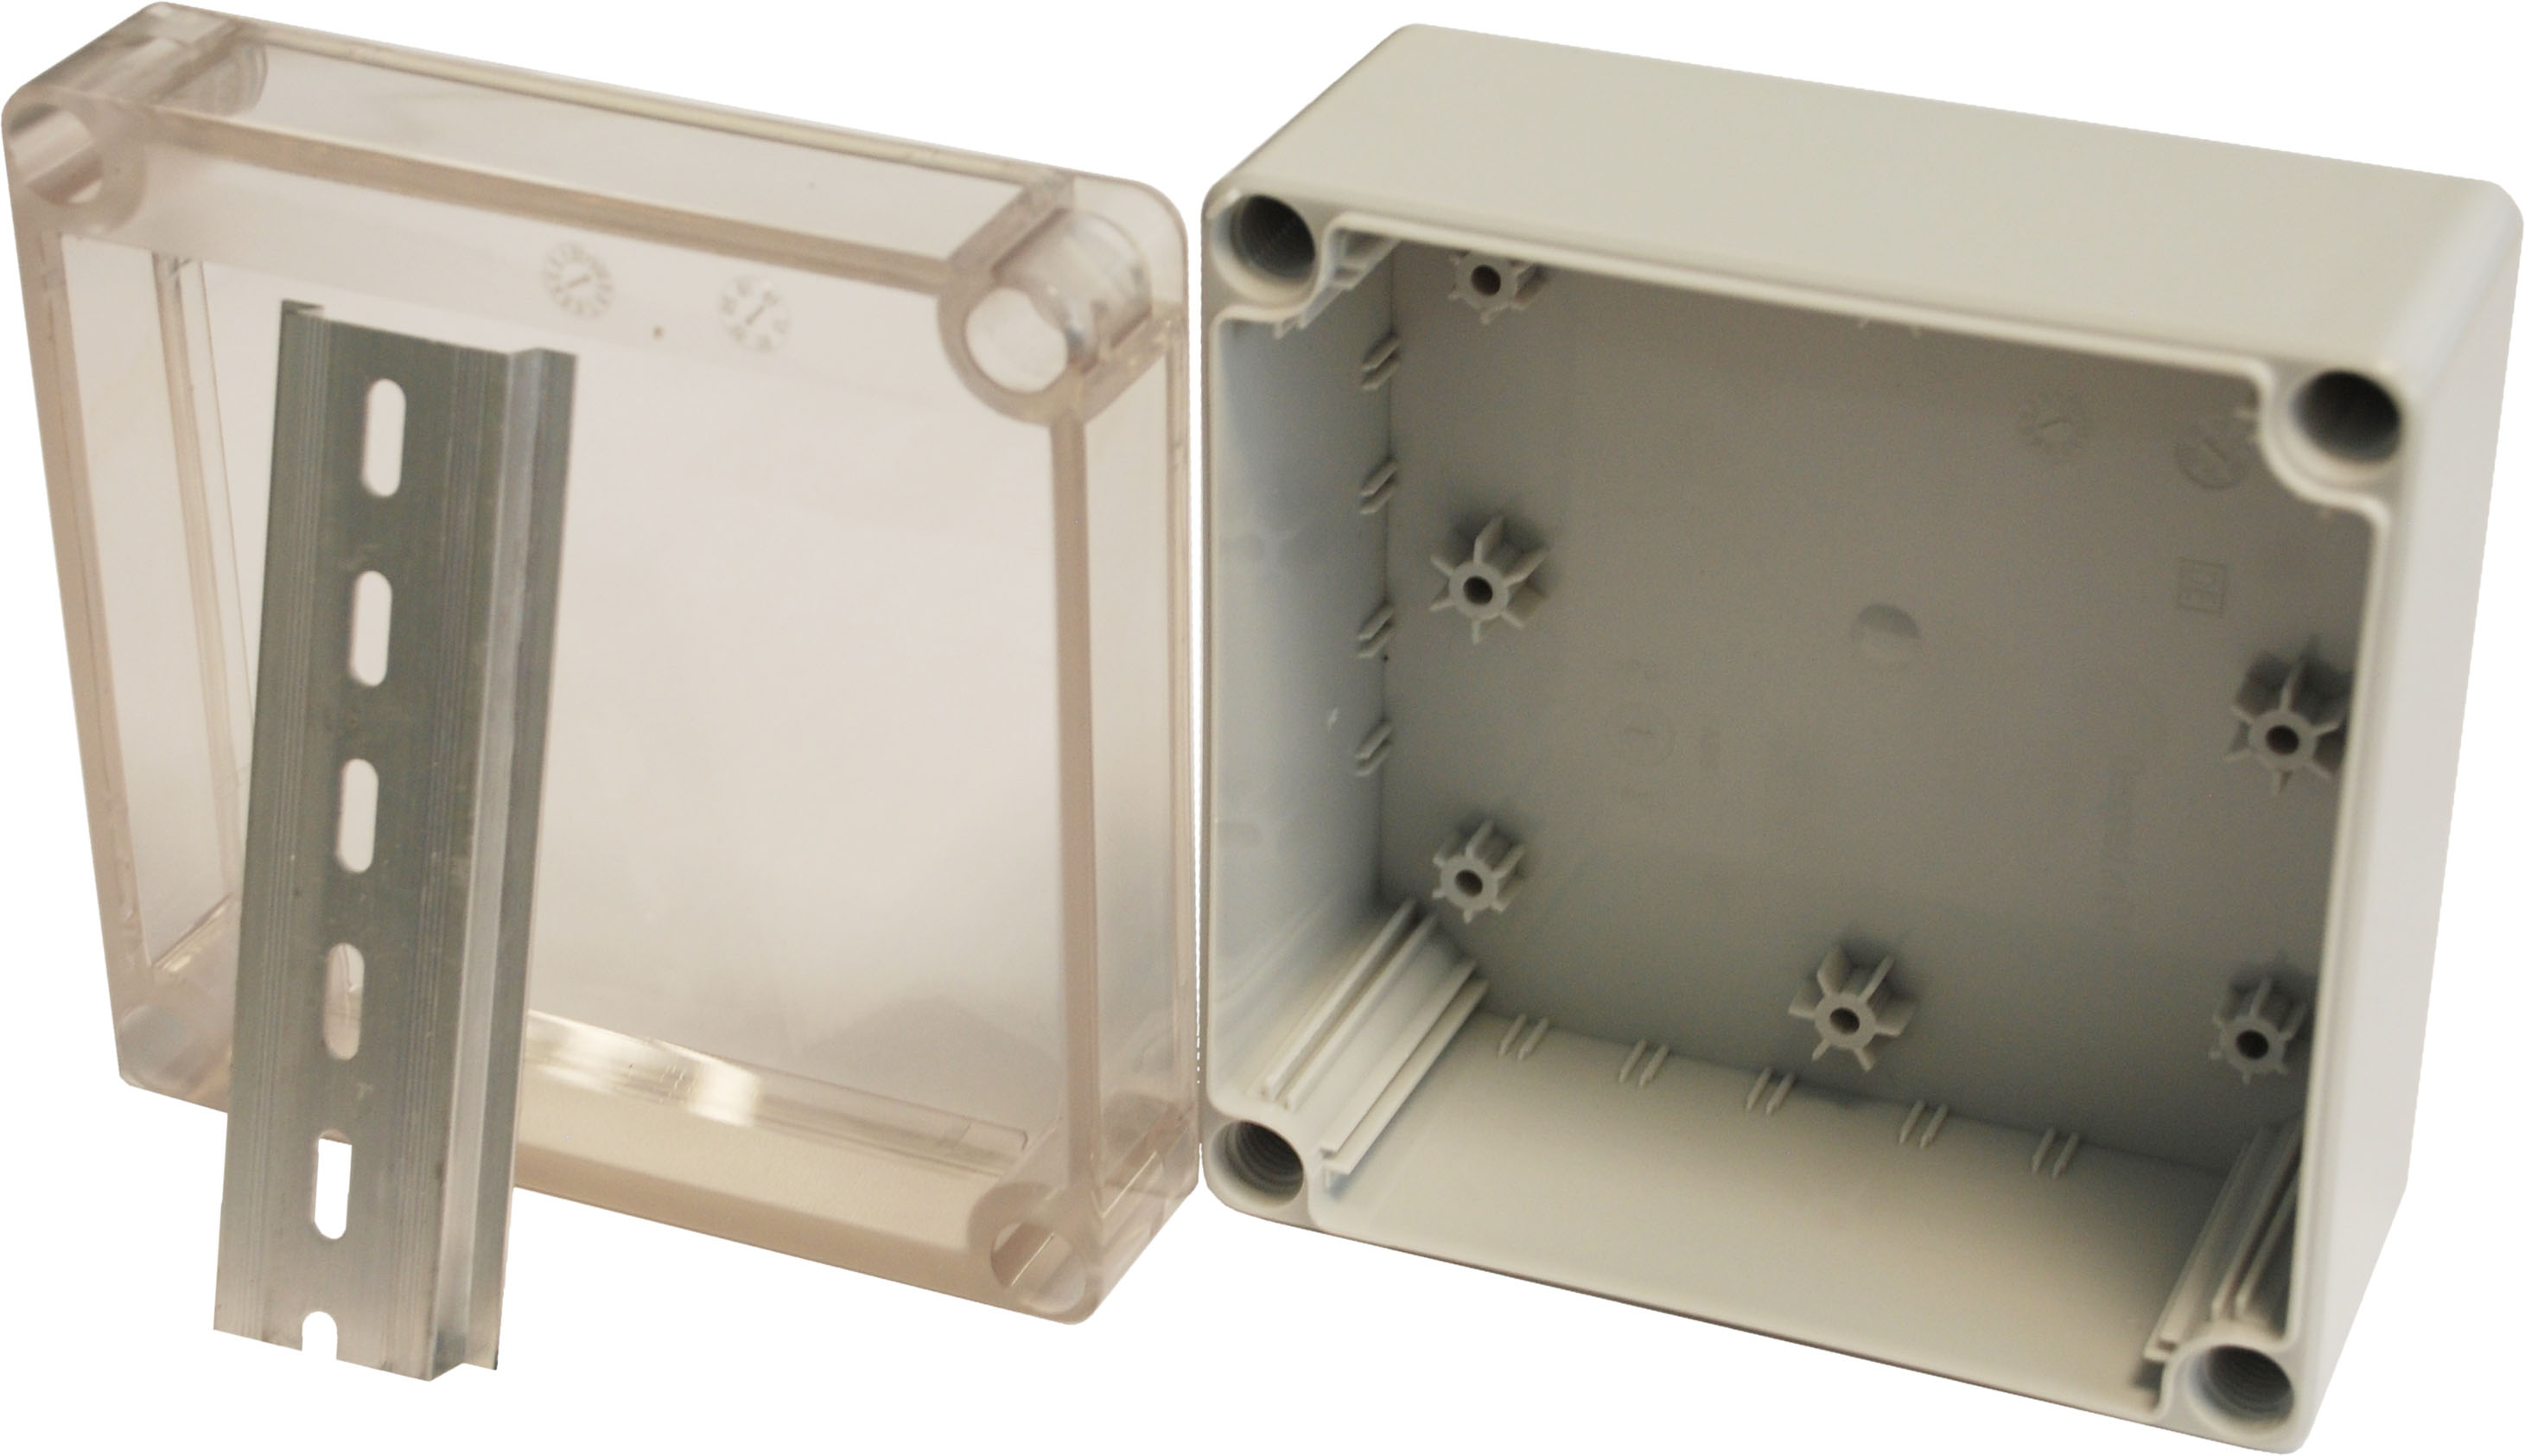 Hylec Apl Ip66 Dn Junction Box Enclosures With 35mm Din